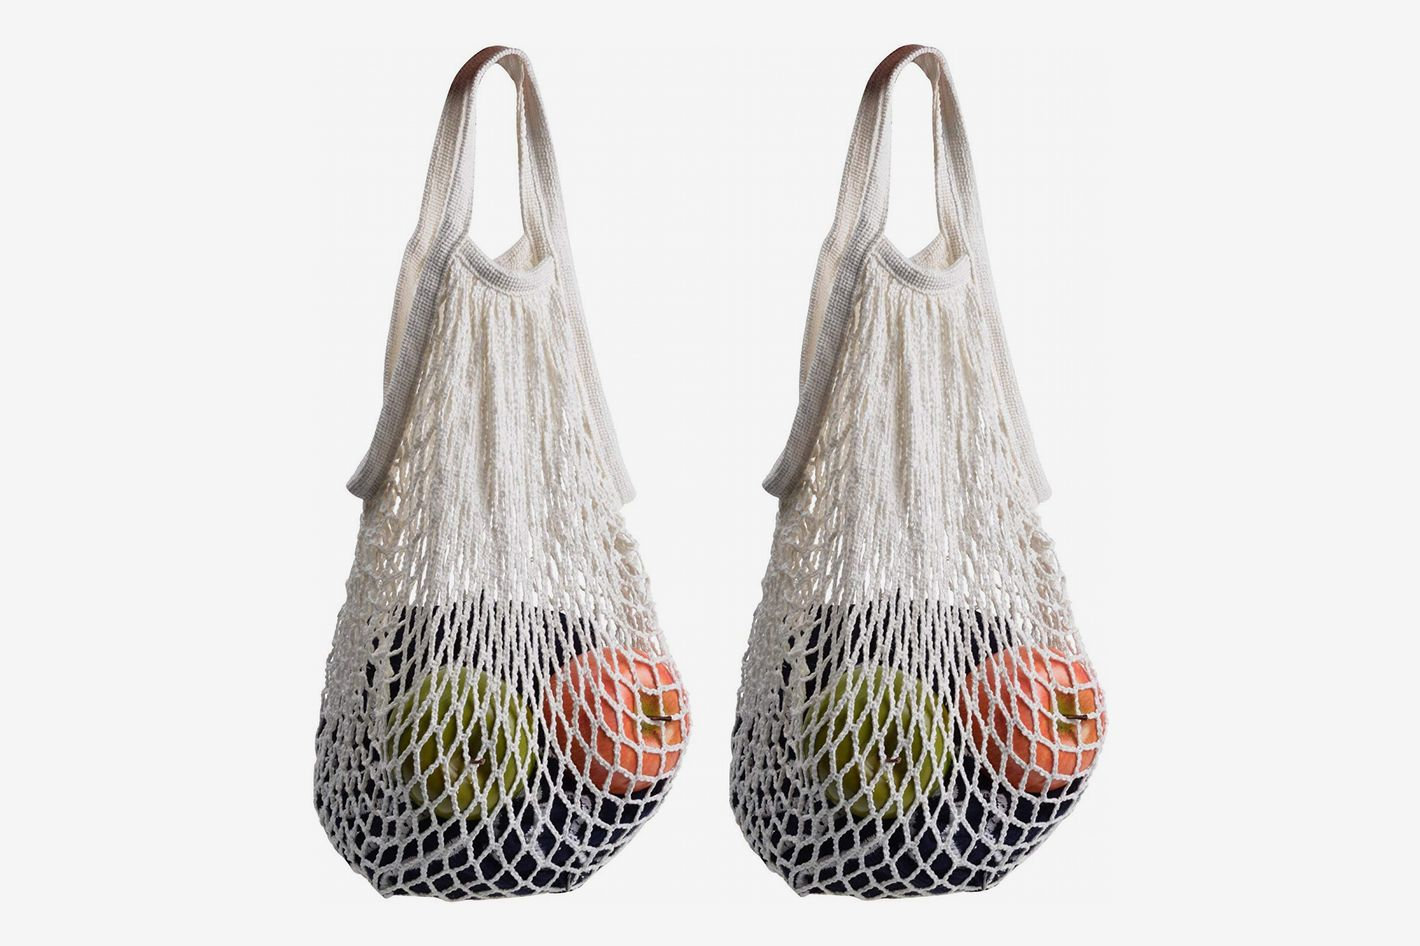 STONCEL Cotton Net Shopping Tote